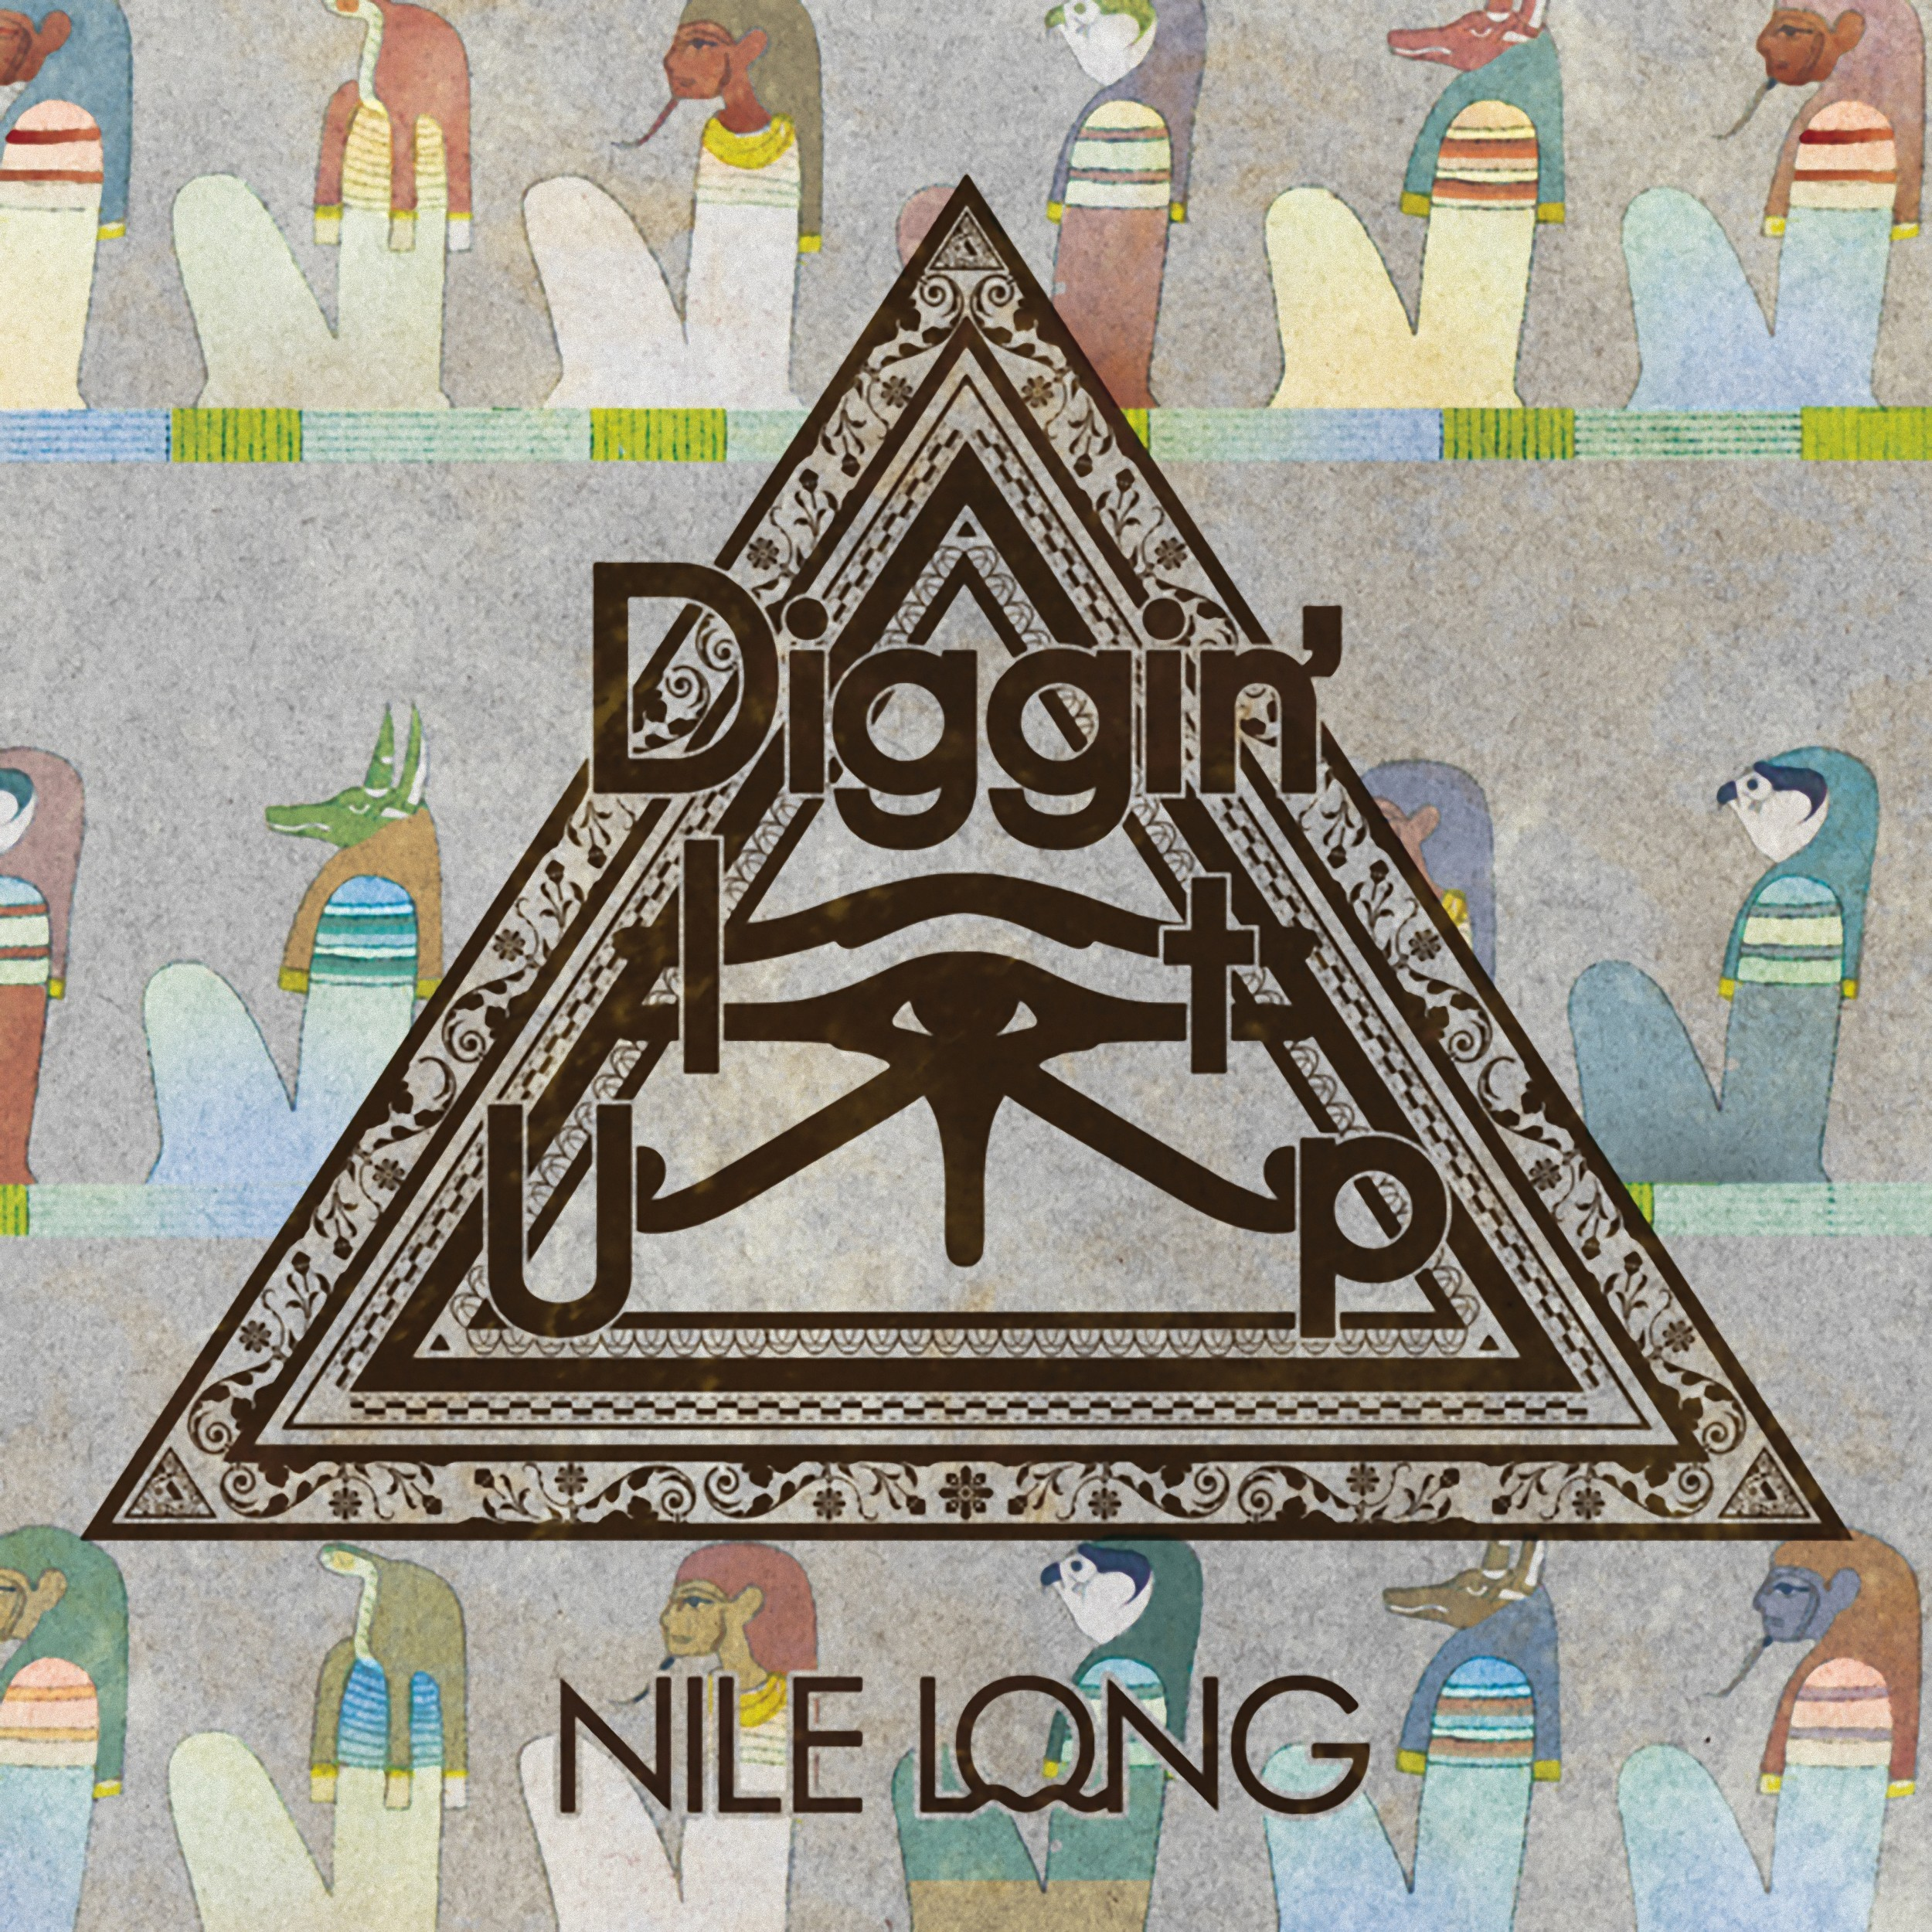 Image of Diggin' It Up / NILE LONG